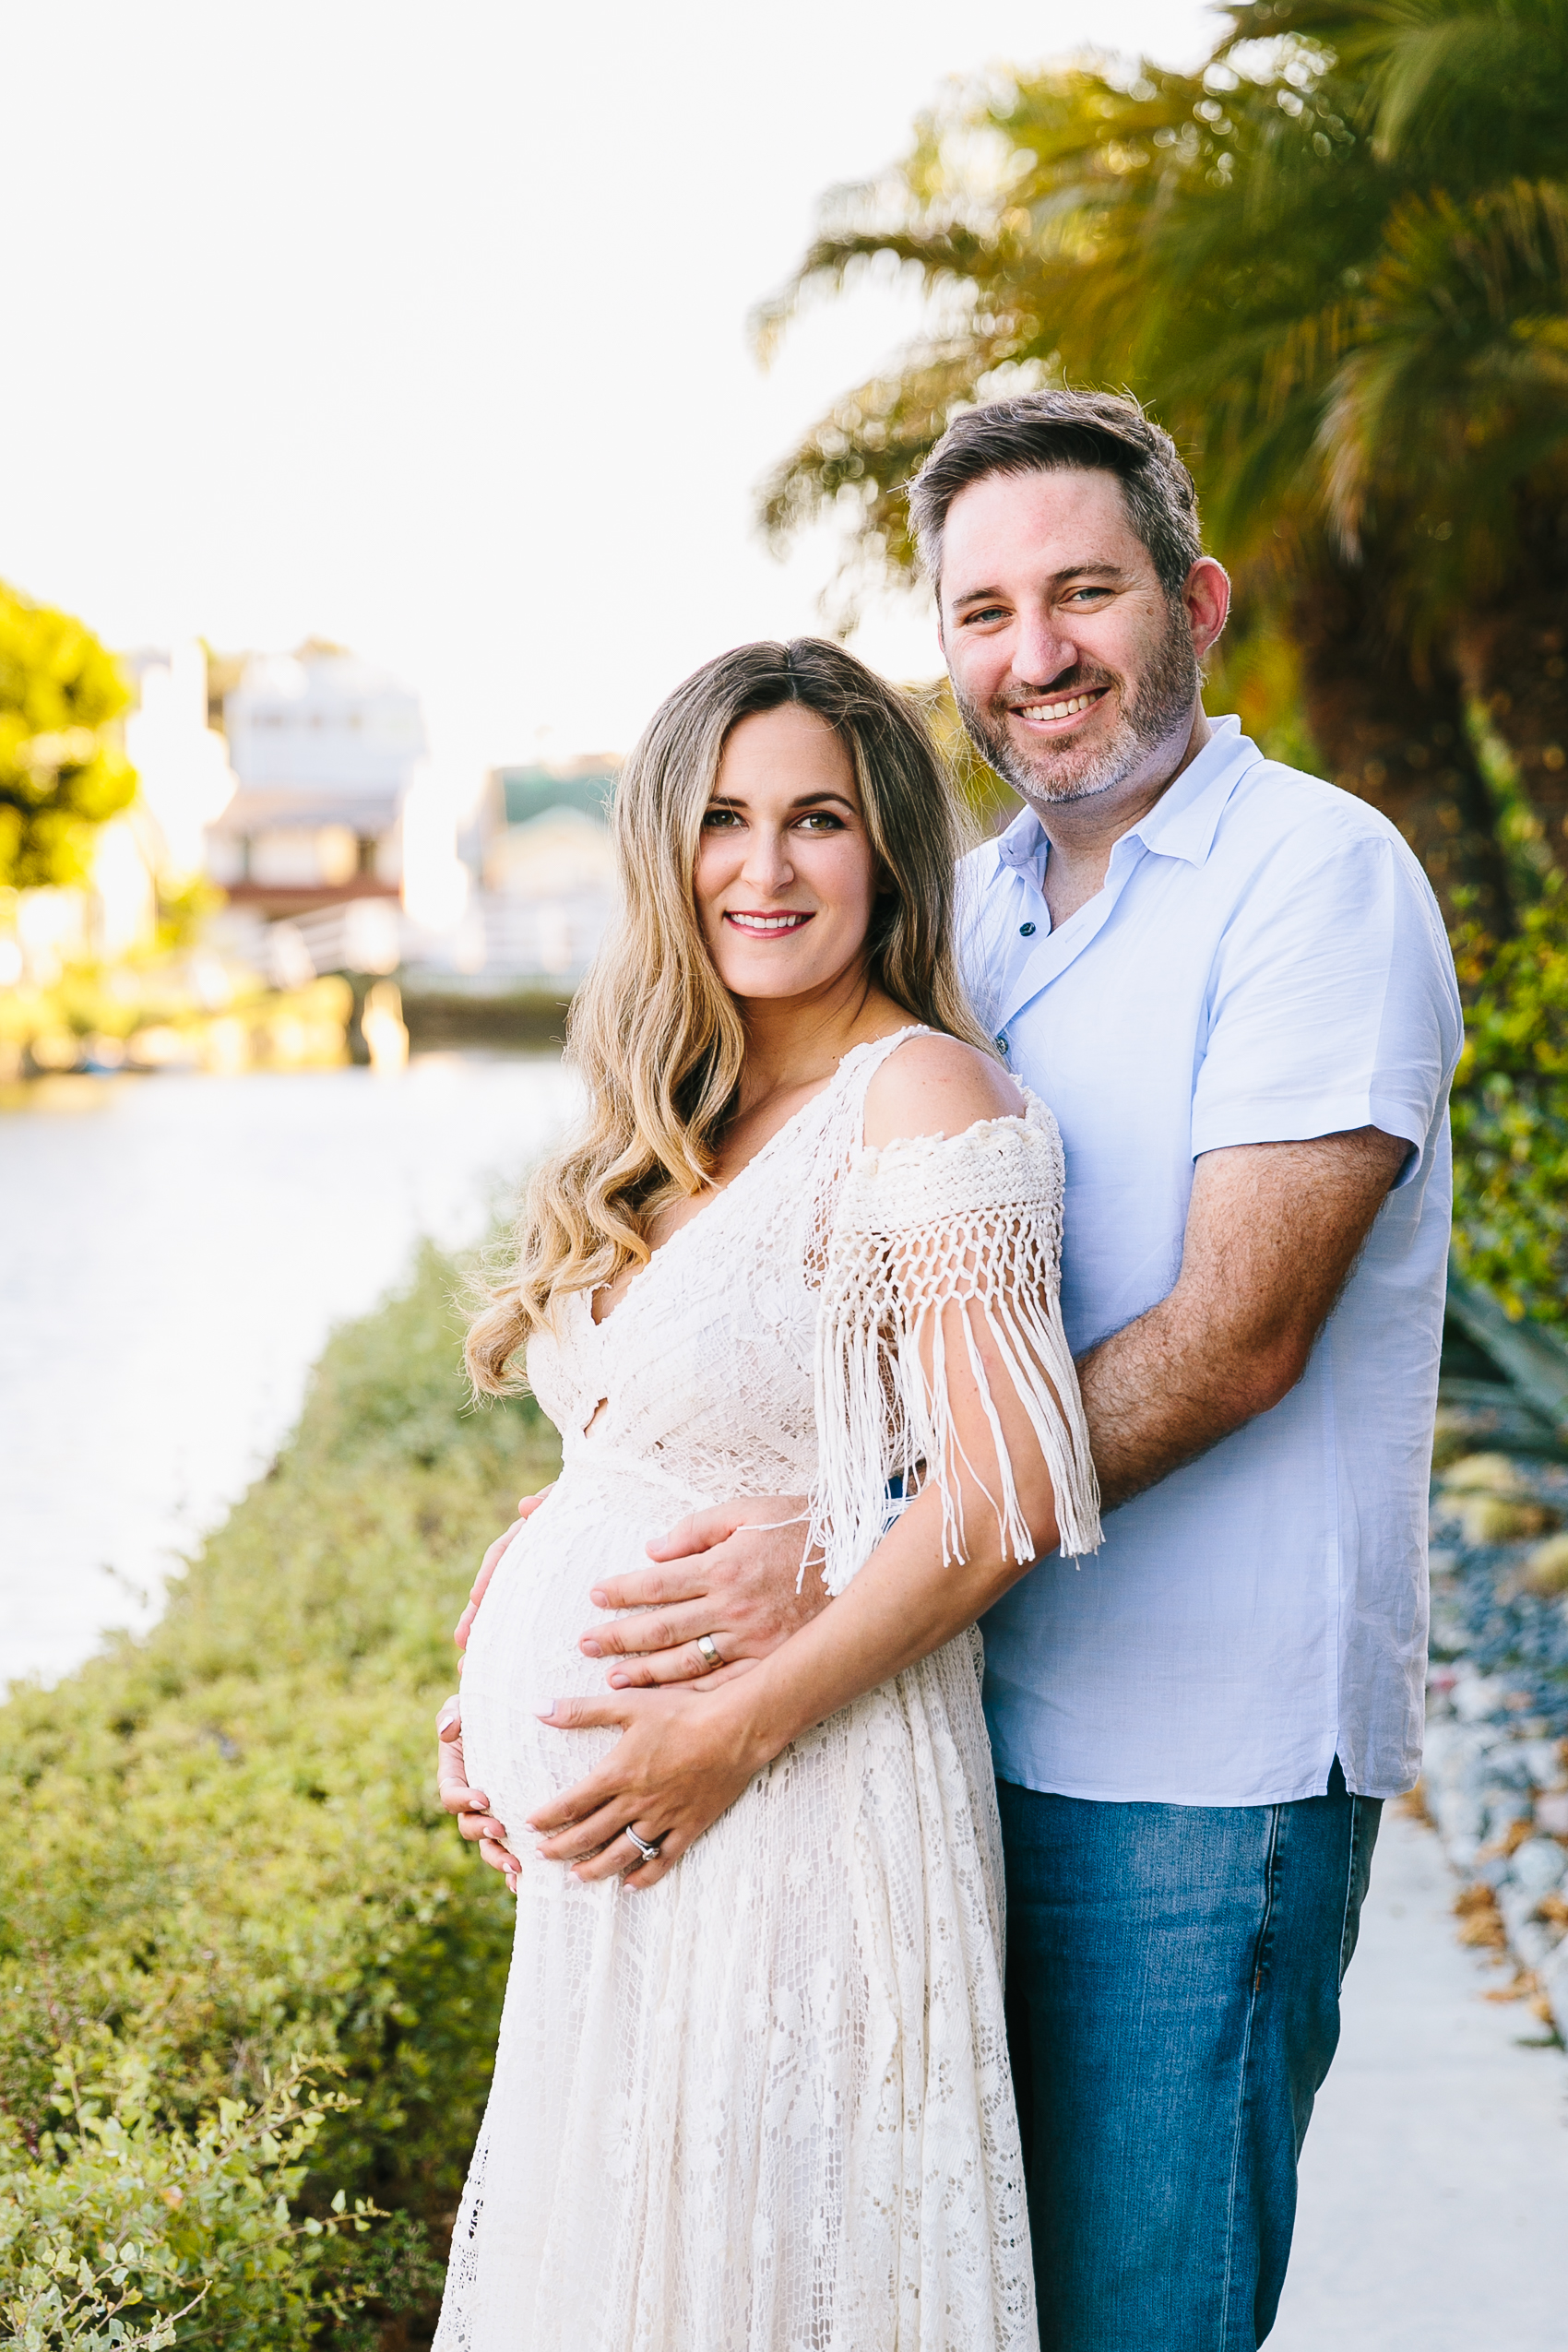 Los_Angeles_Family_Photographer_Maternity_Photos_Baby_Pregnancy_Venice_Beach_Golden_Hour-0445.jpg